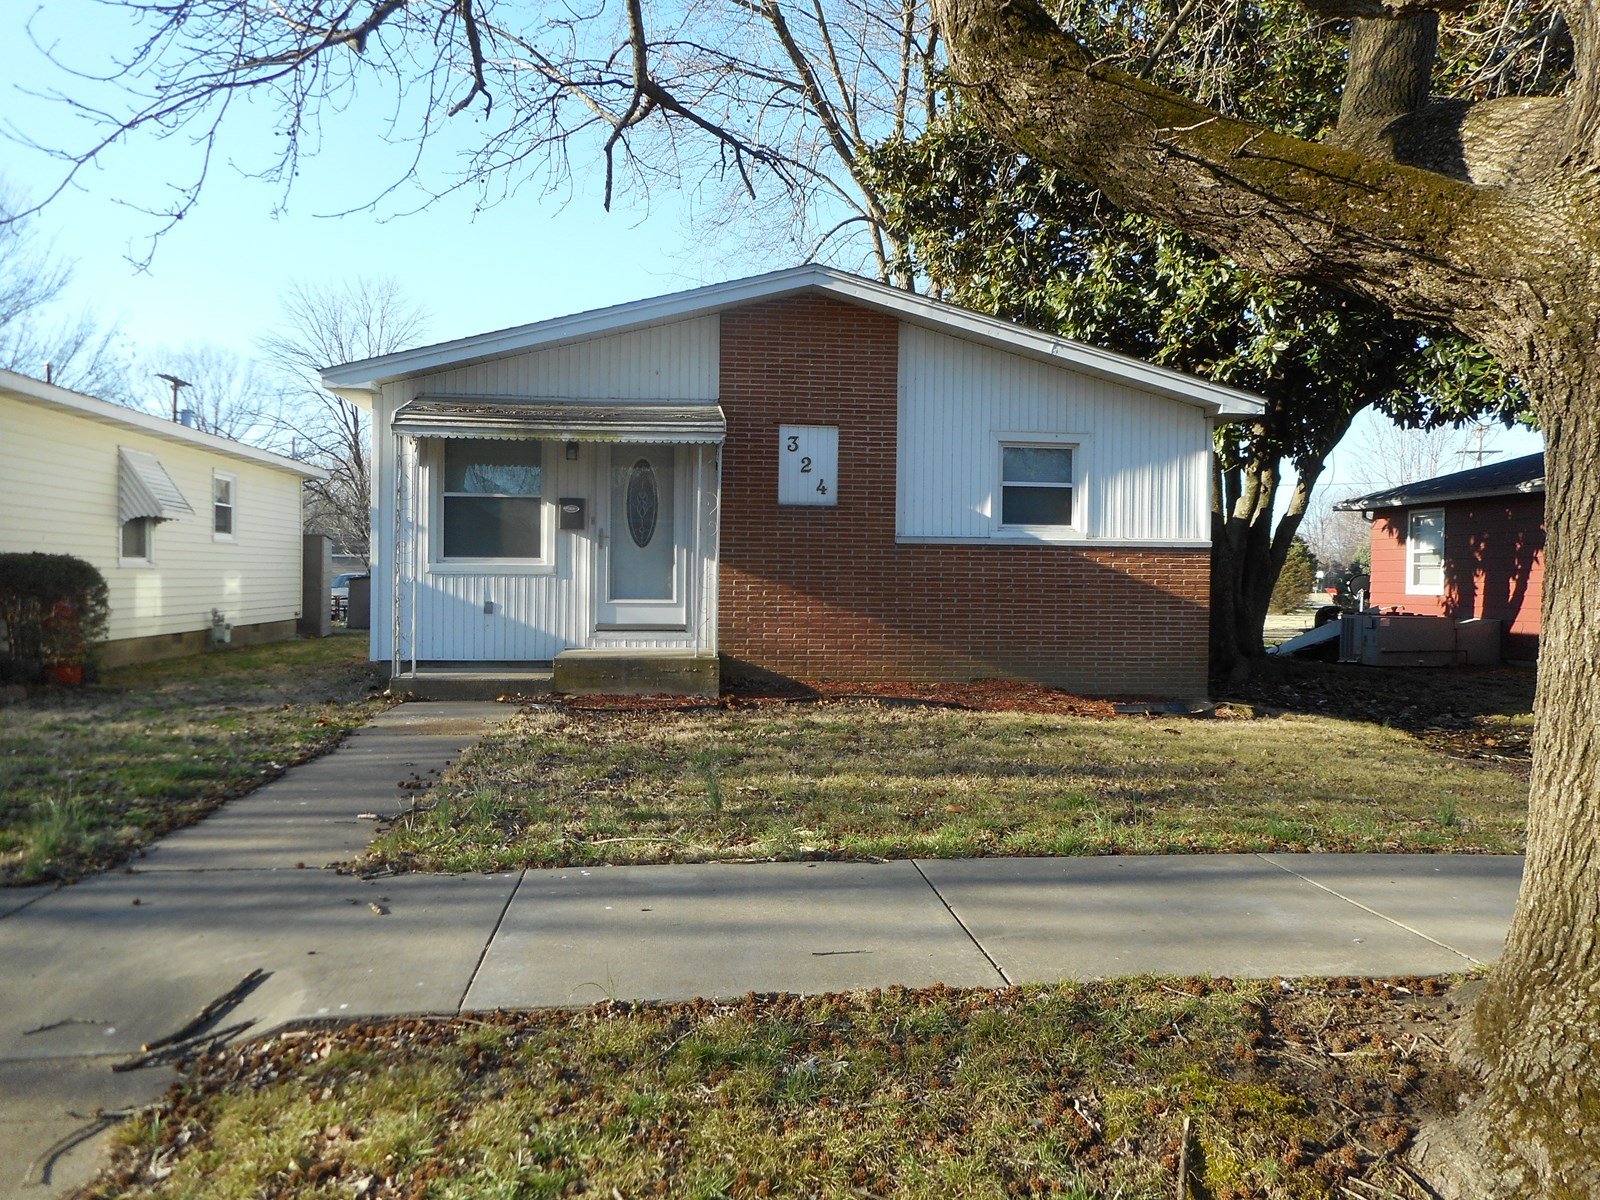 House for Sale in Chaffee, Missouri